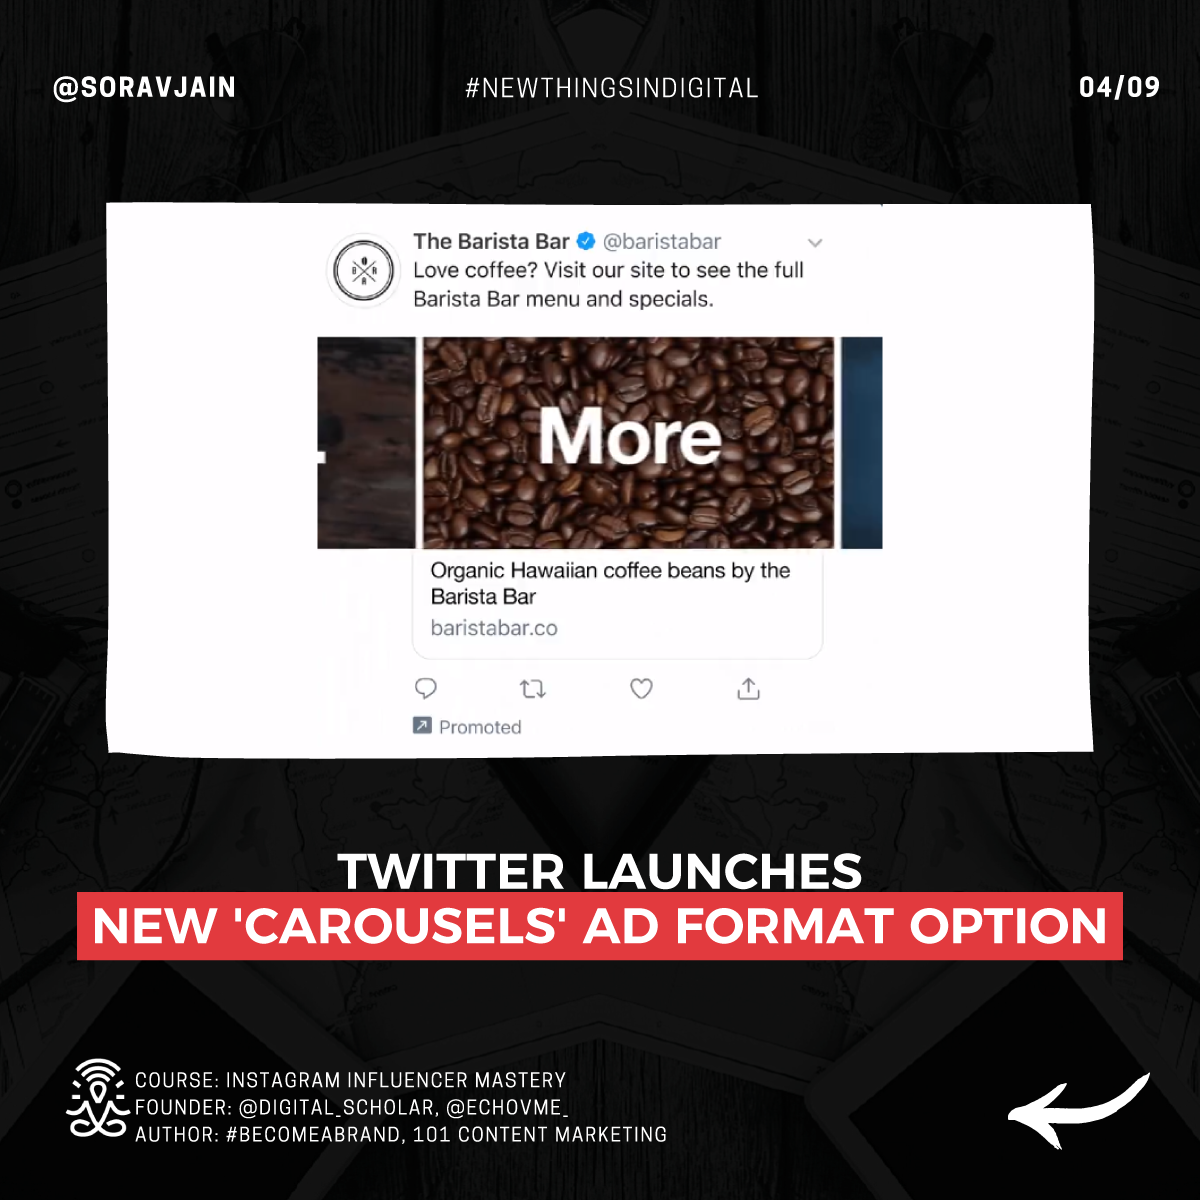 Twitter launched a new 'Carousels' ad format option